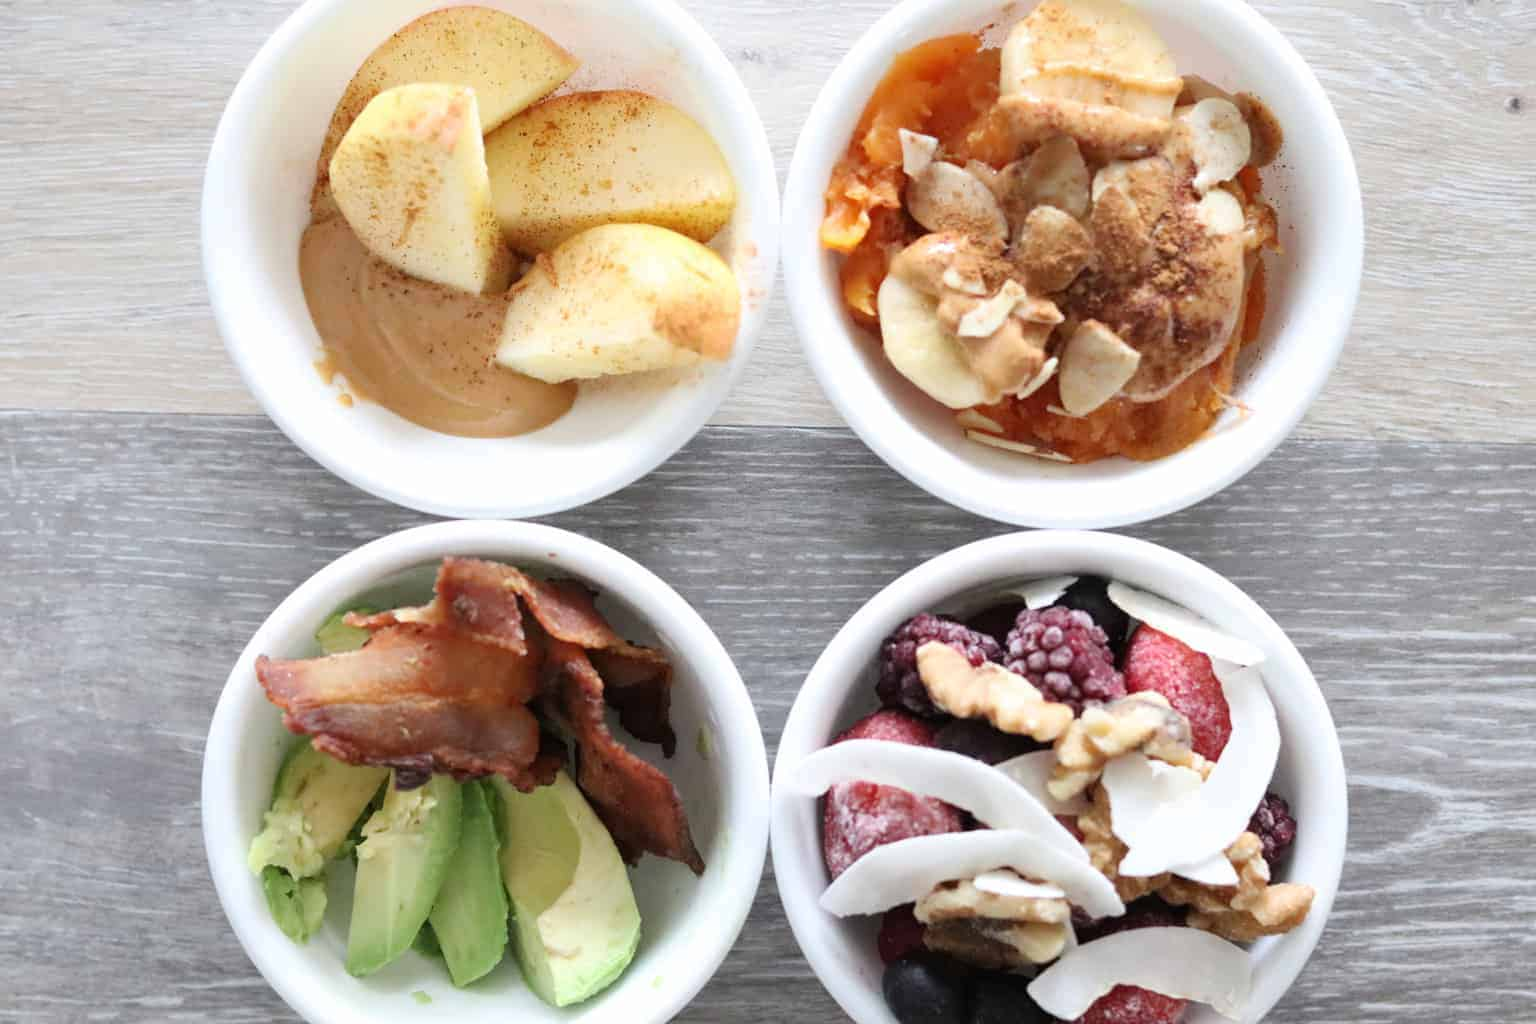 Healthy snacks in white bowls.